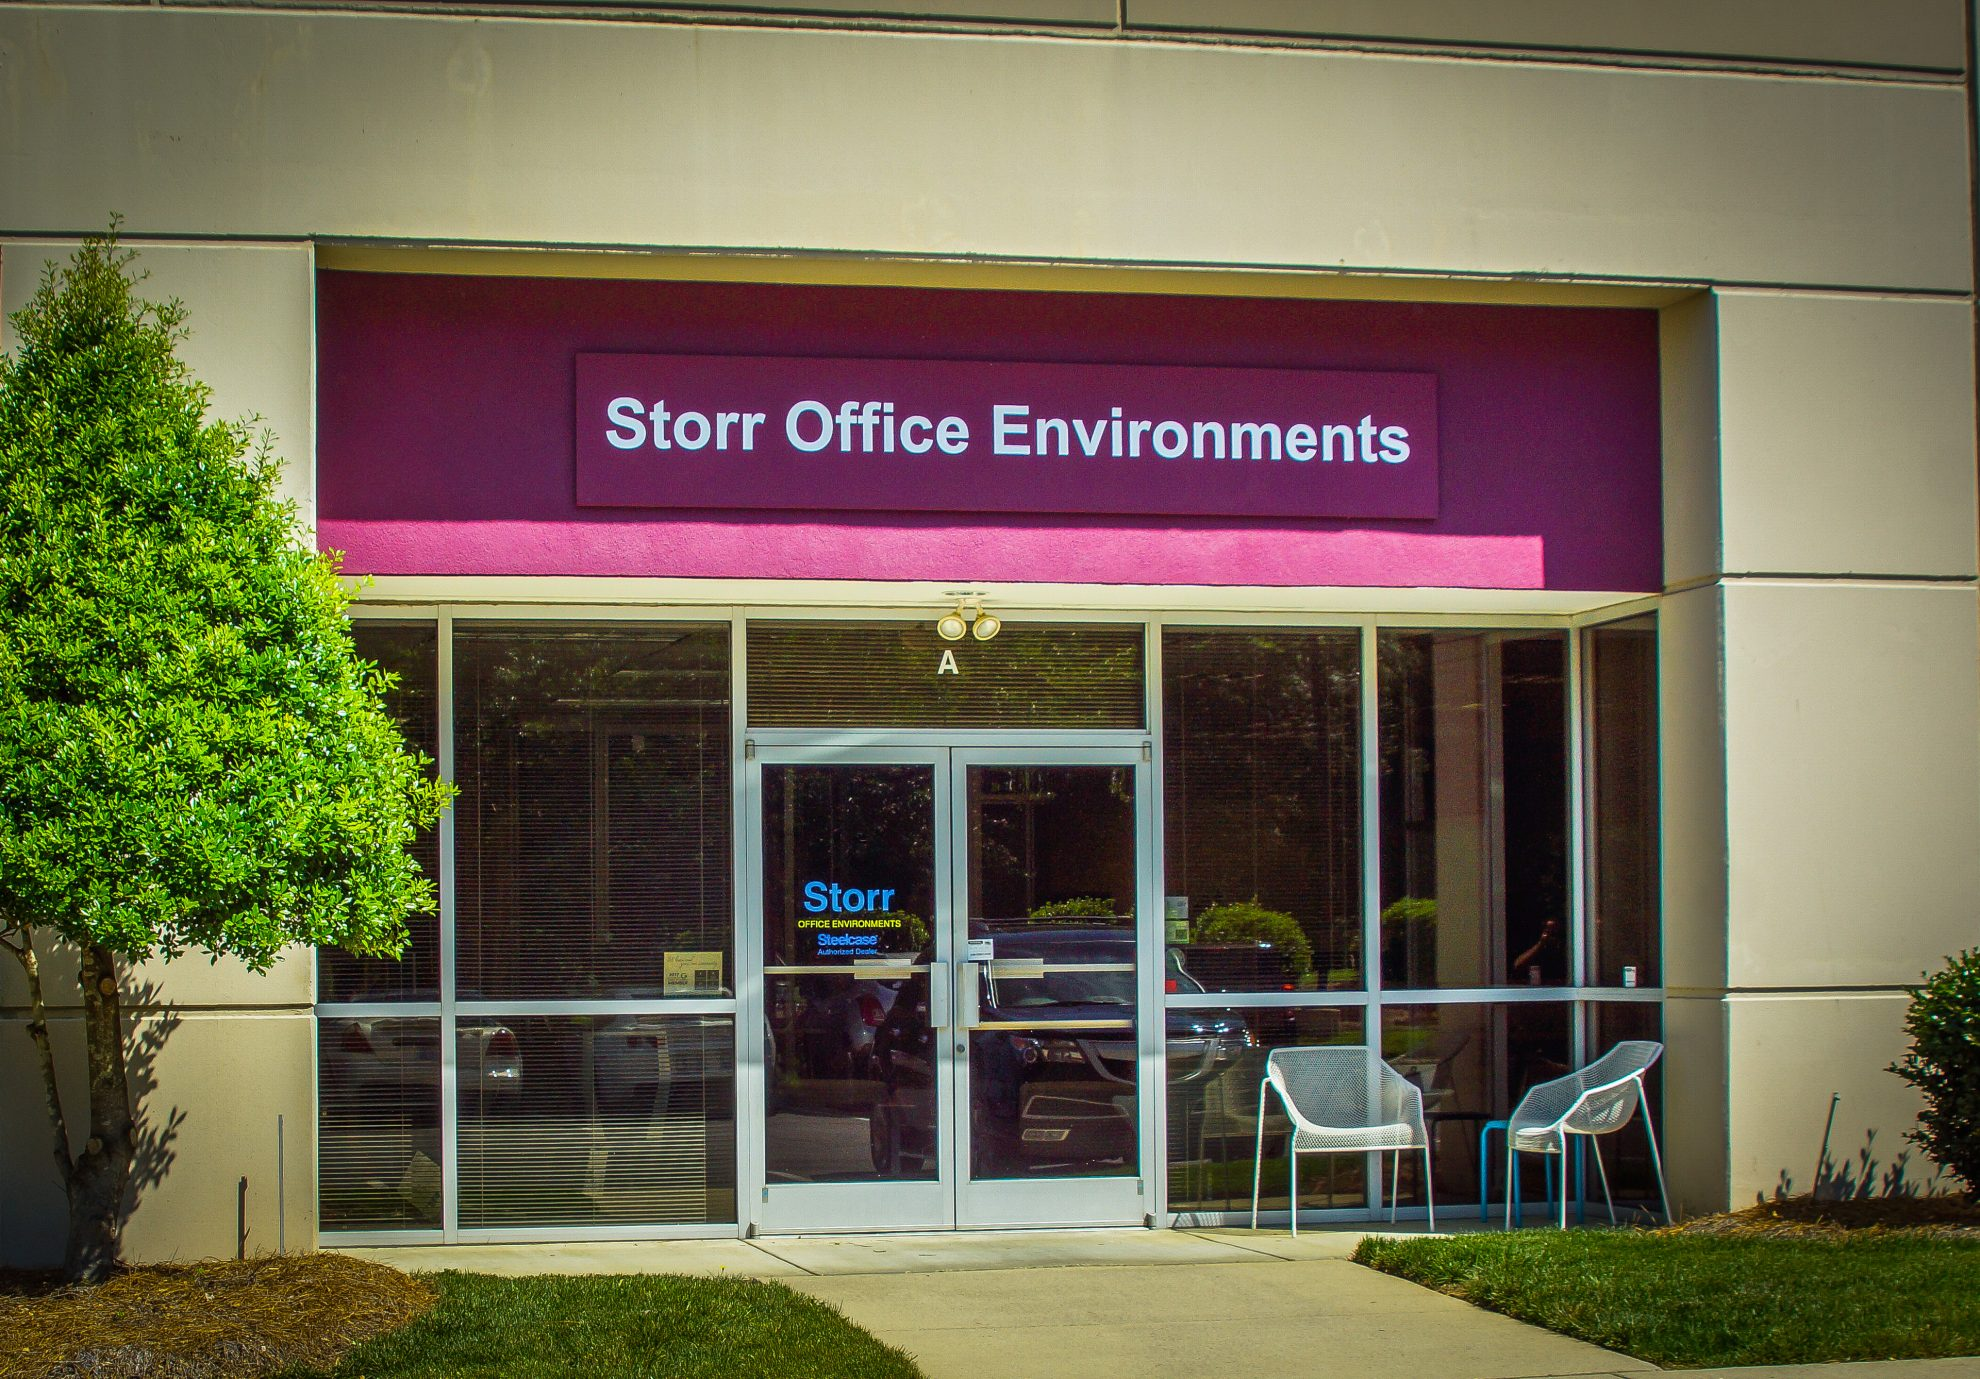 Storr Office Environments - Greensboro and Triad